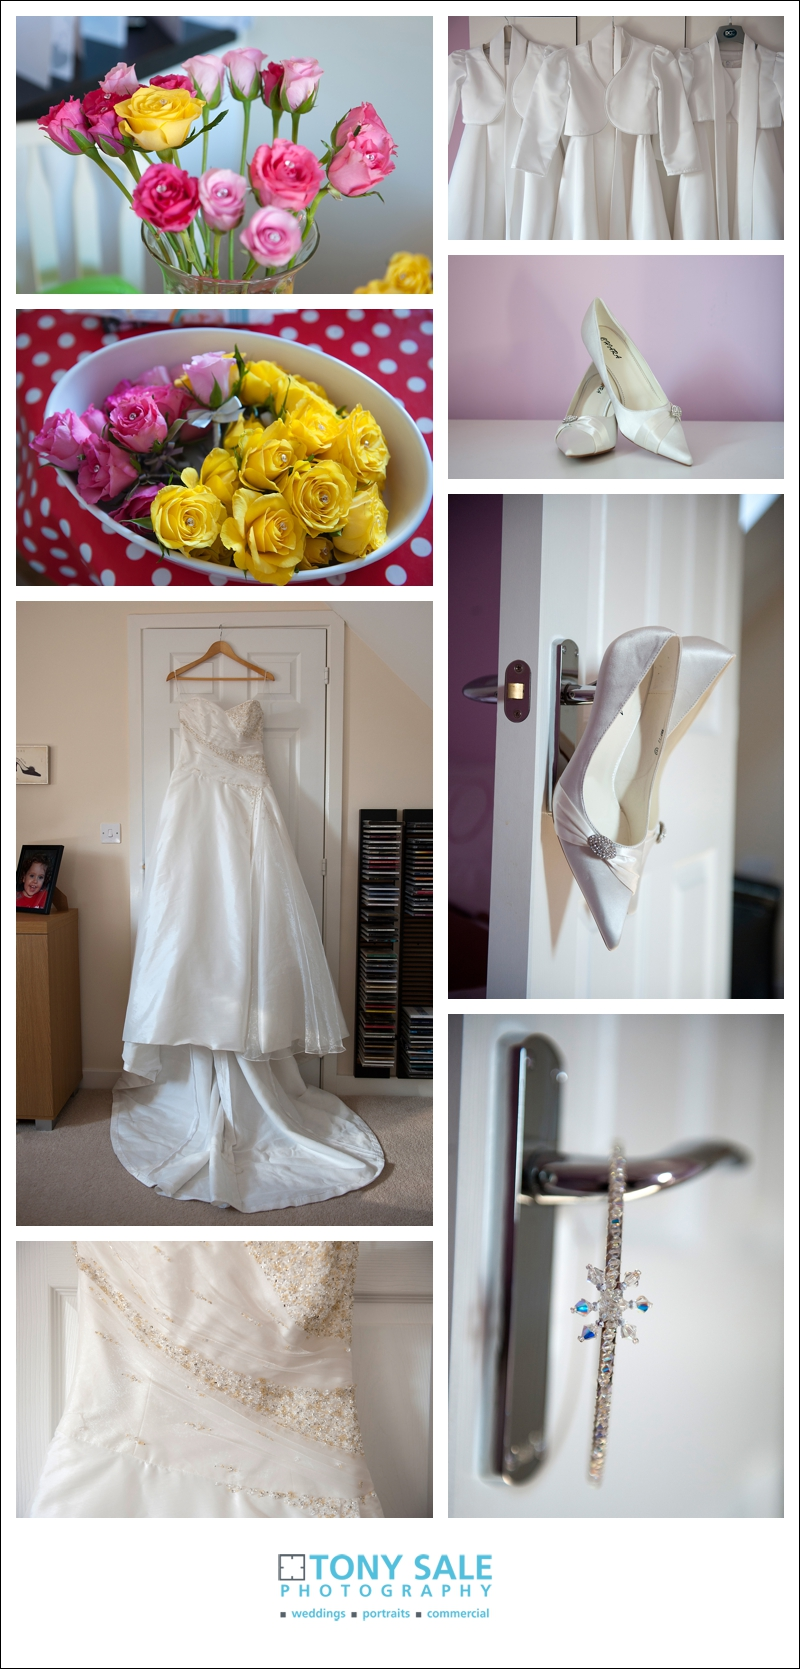 The wedding dress flowers and shoes